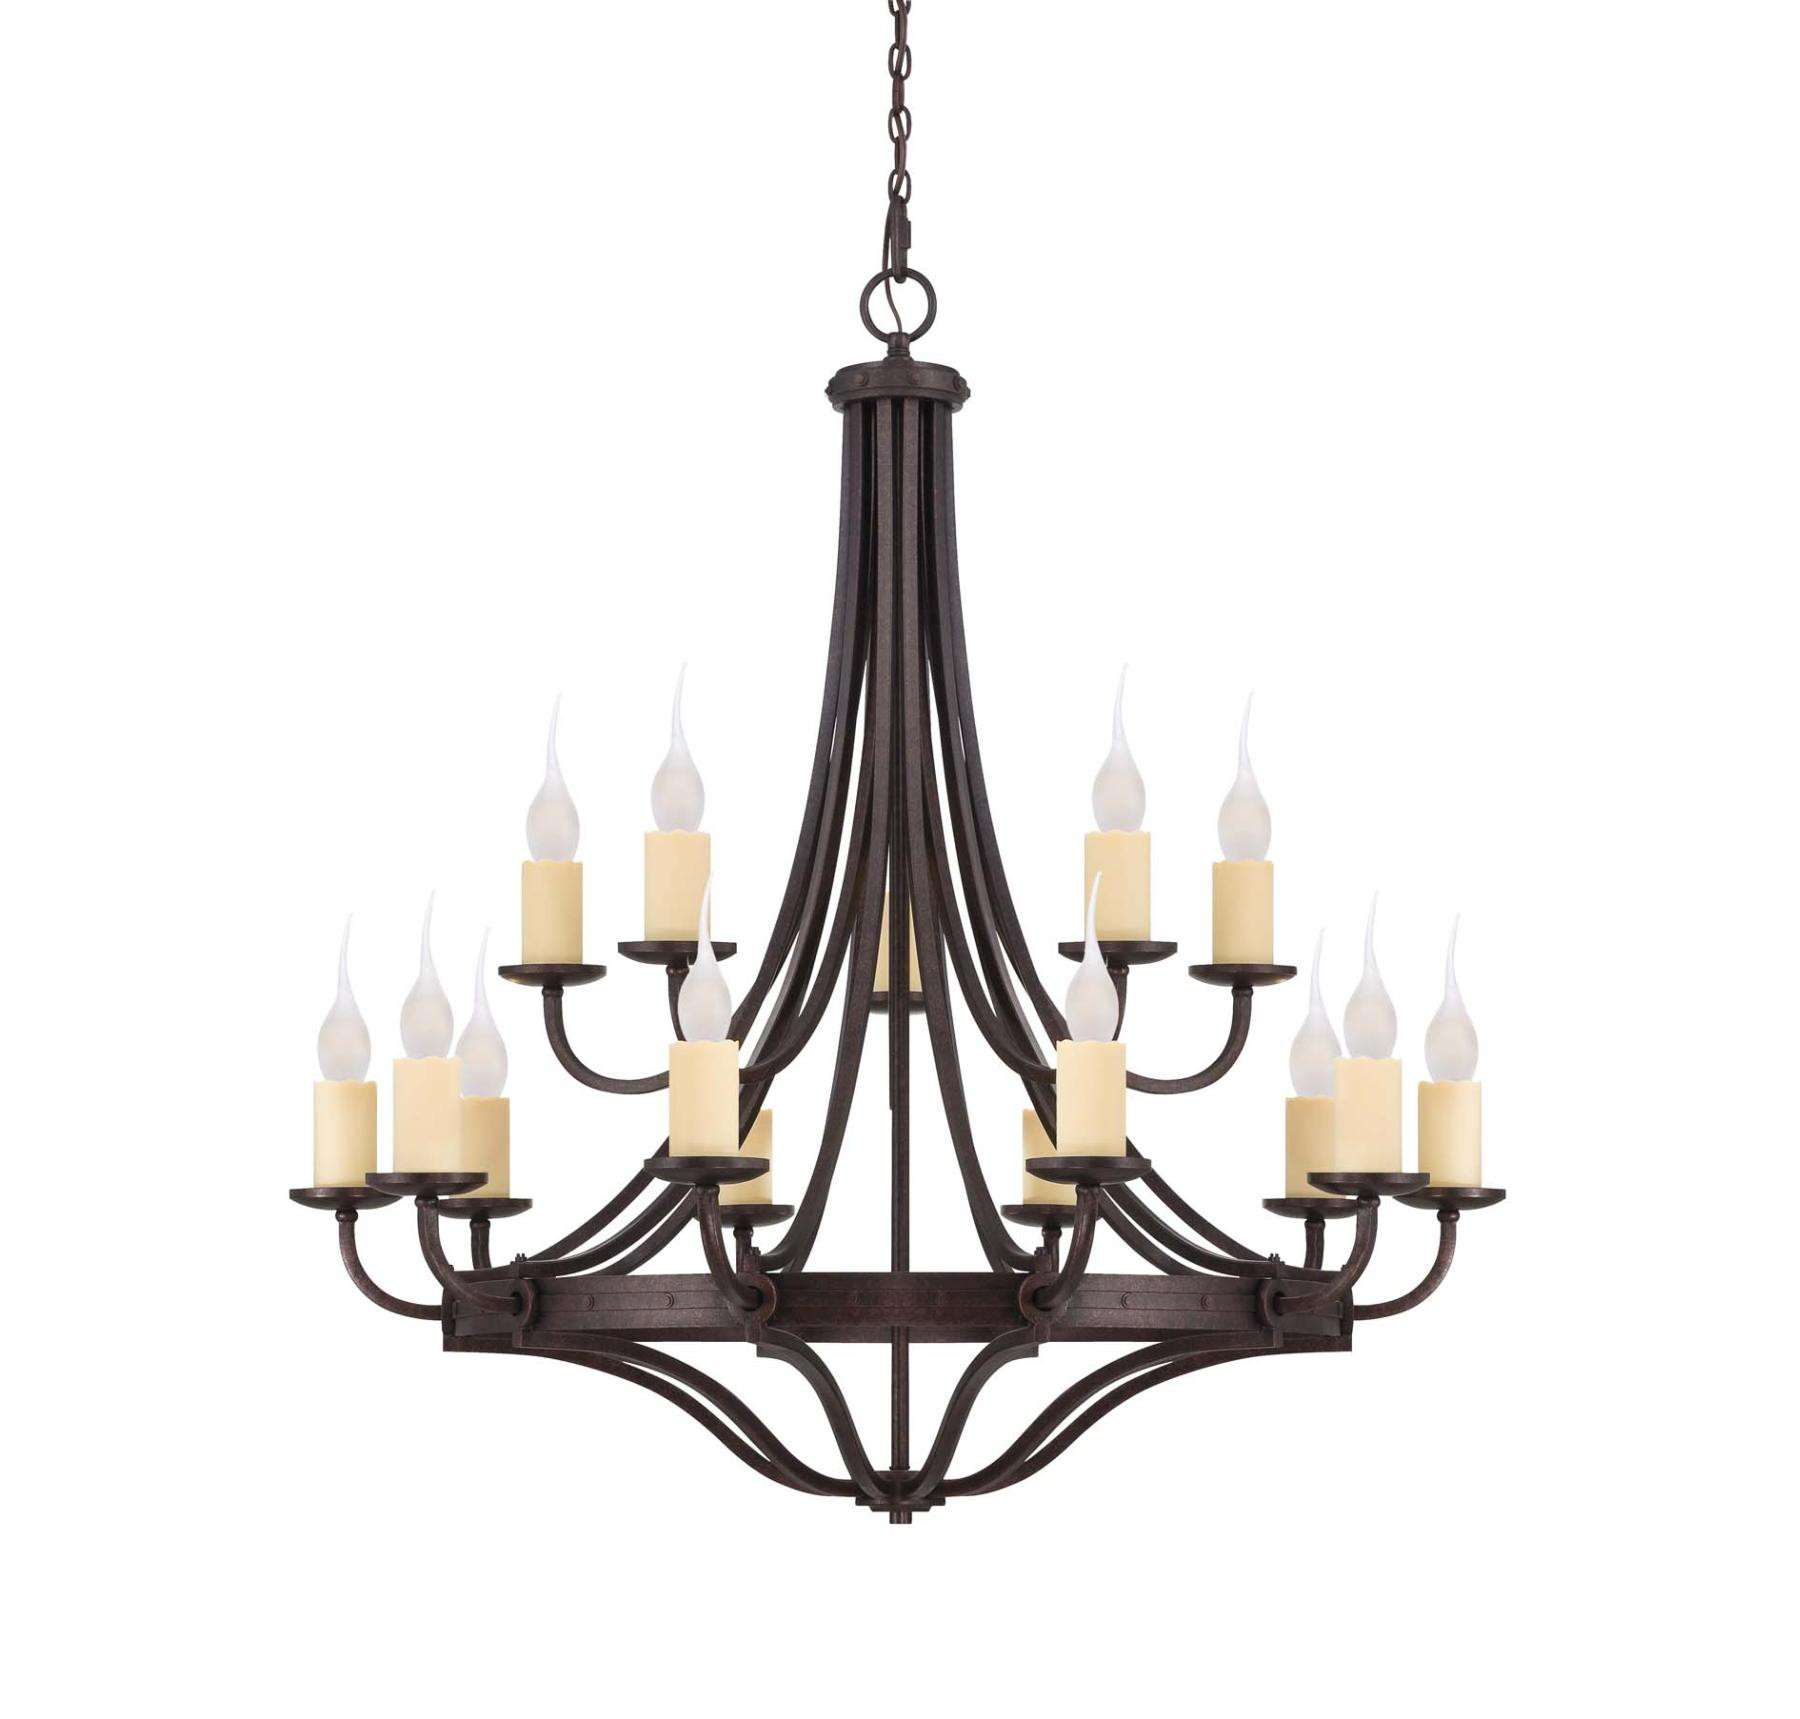 Savoy House 1-2014-15-05 15 Light Chandelier in Oiled Copper finish